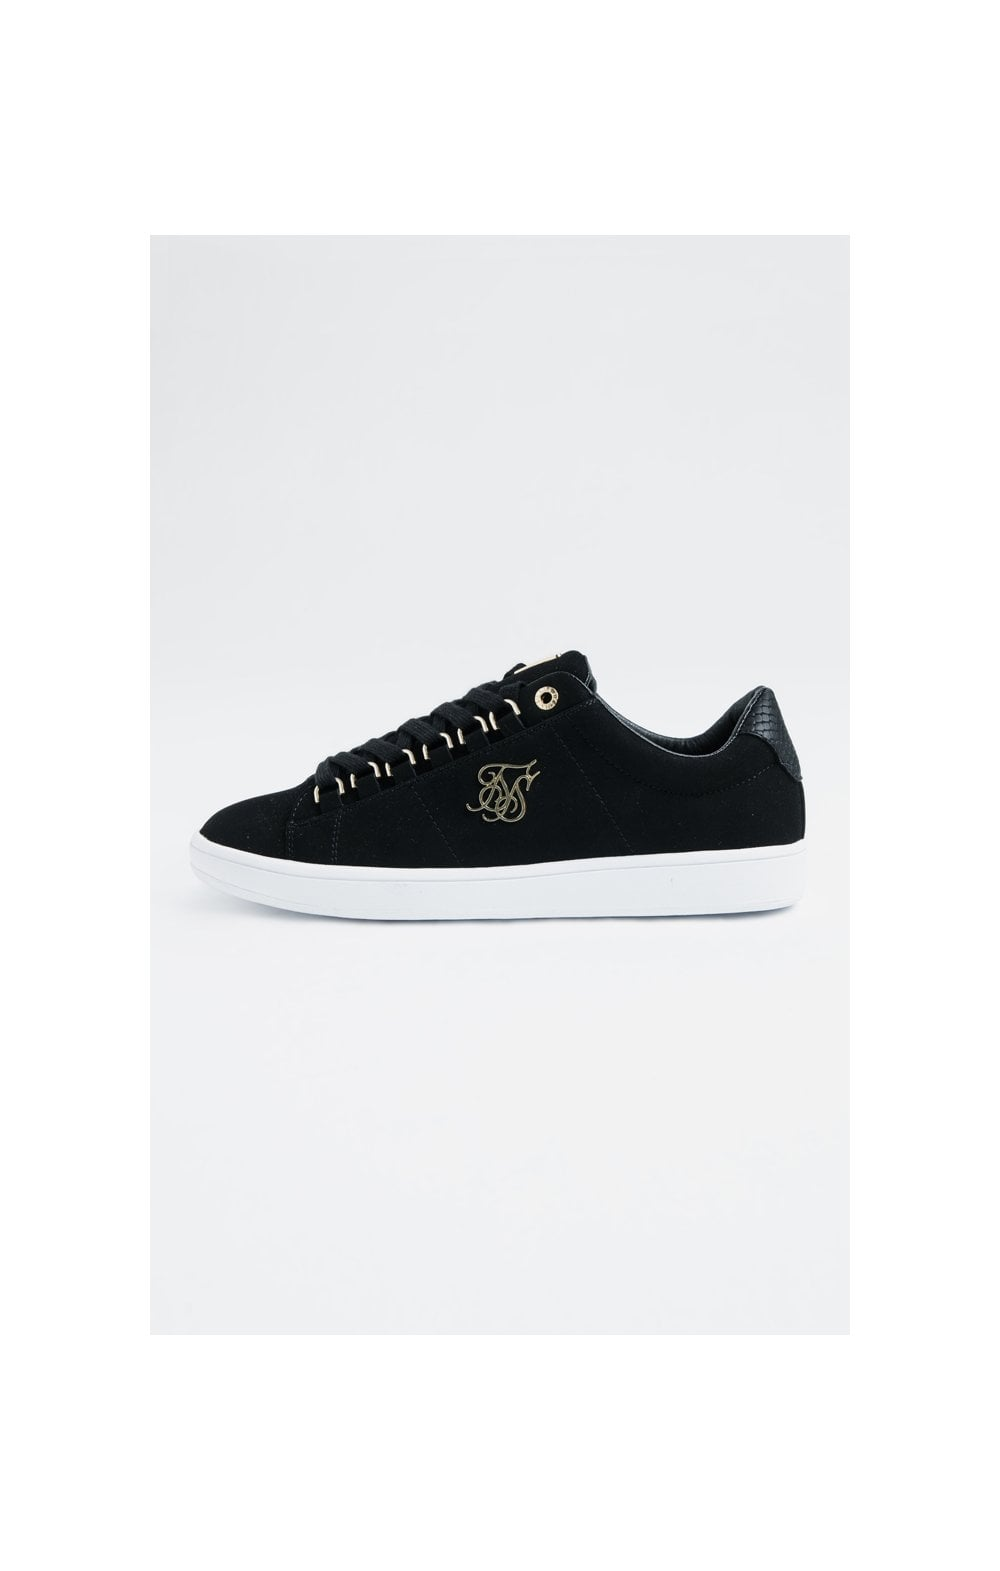 SikSilk Prestige Low Suede - Black